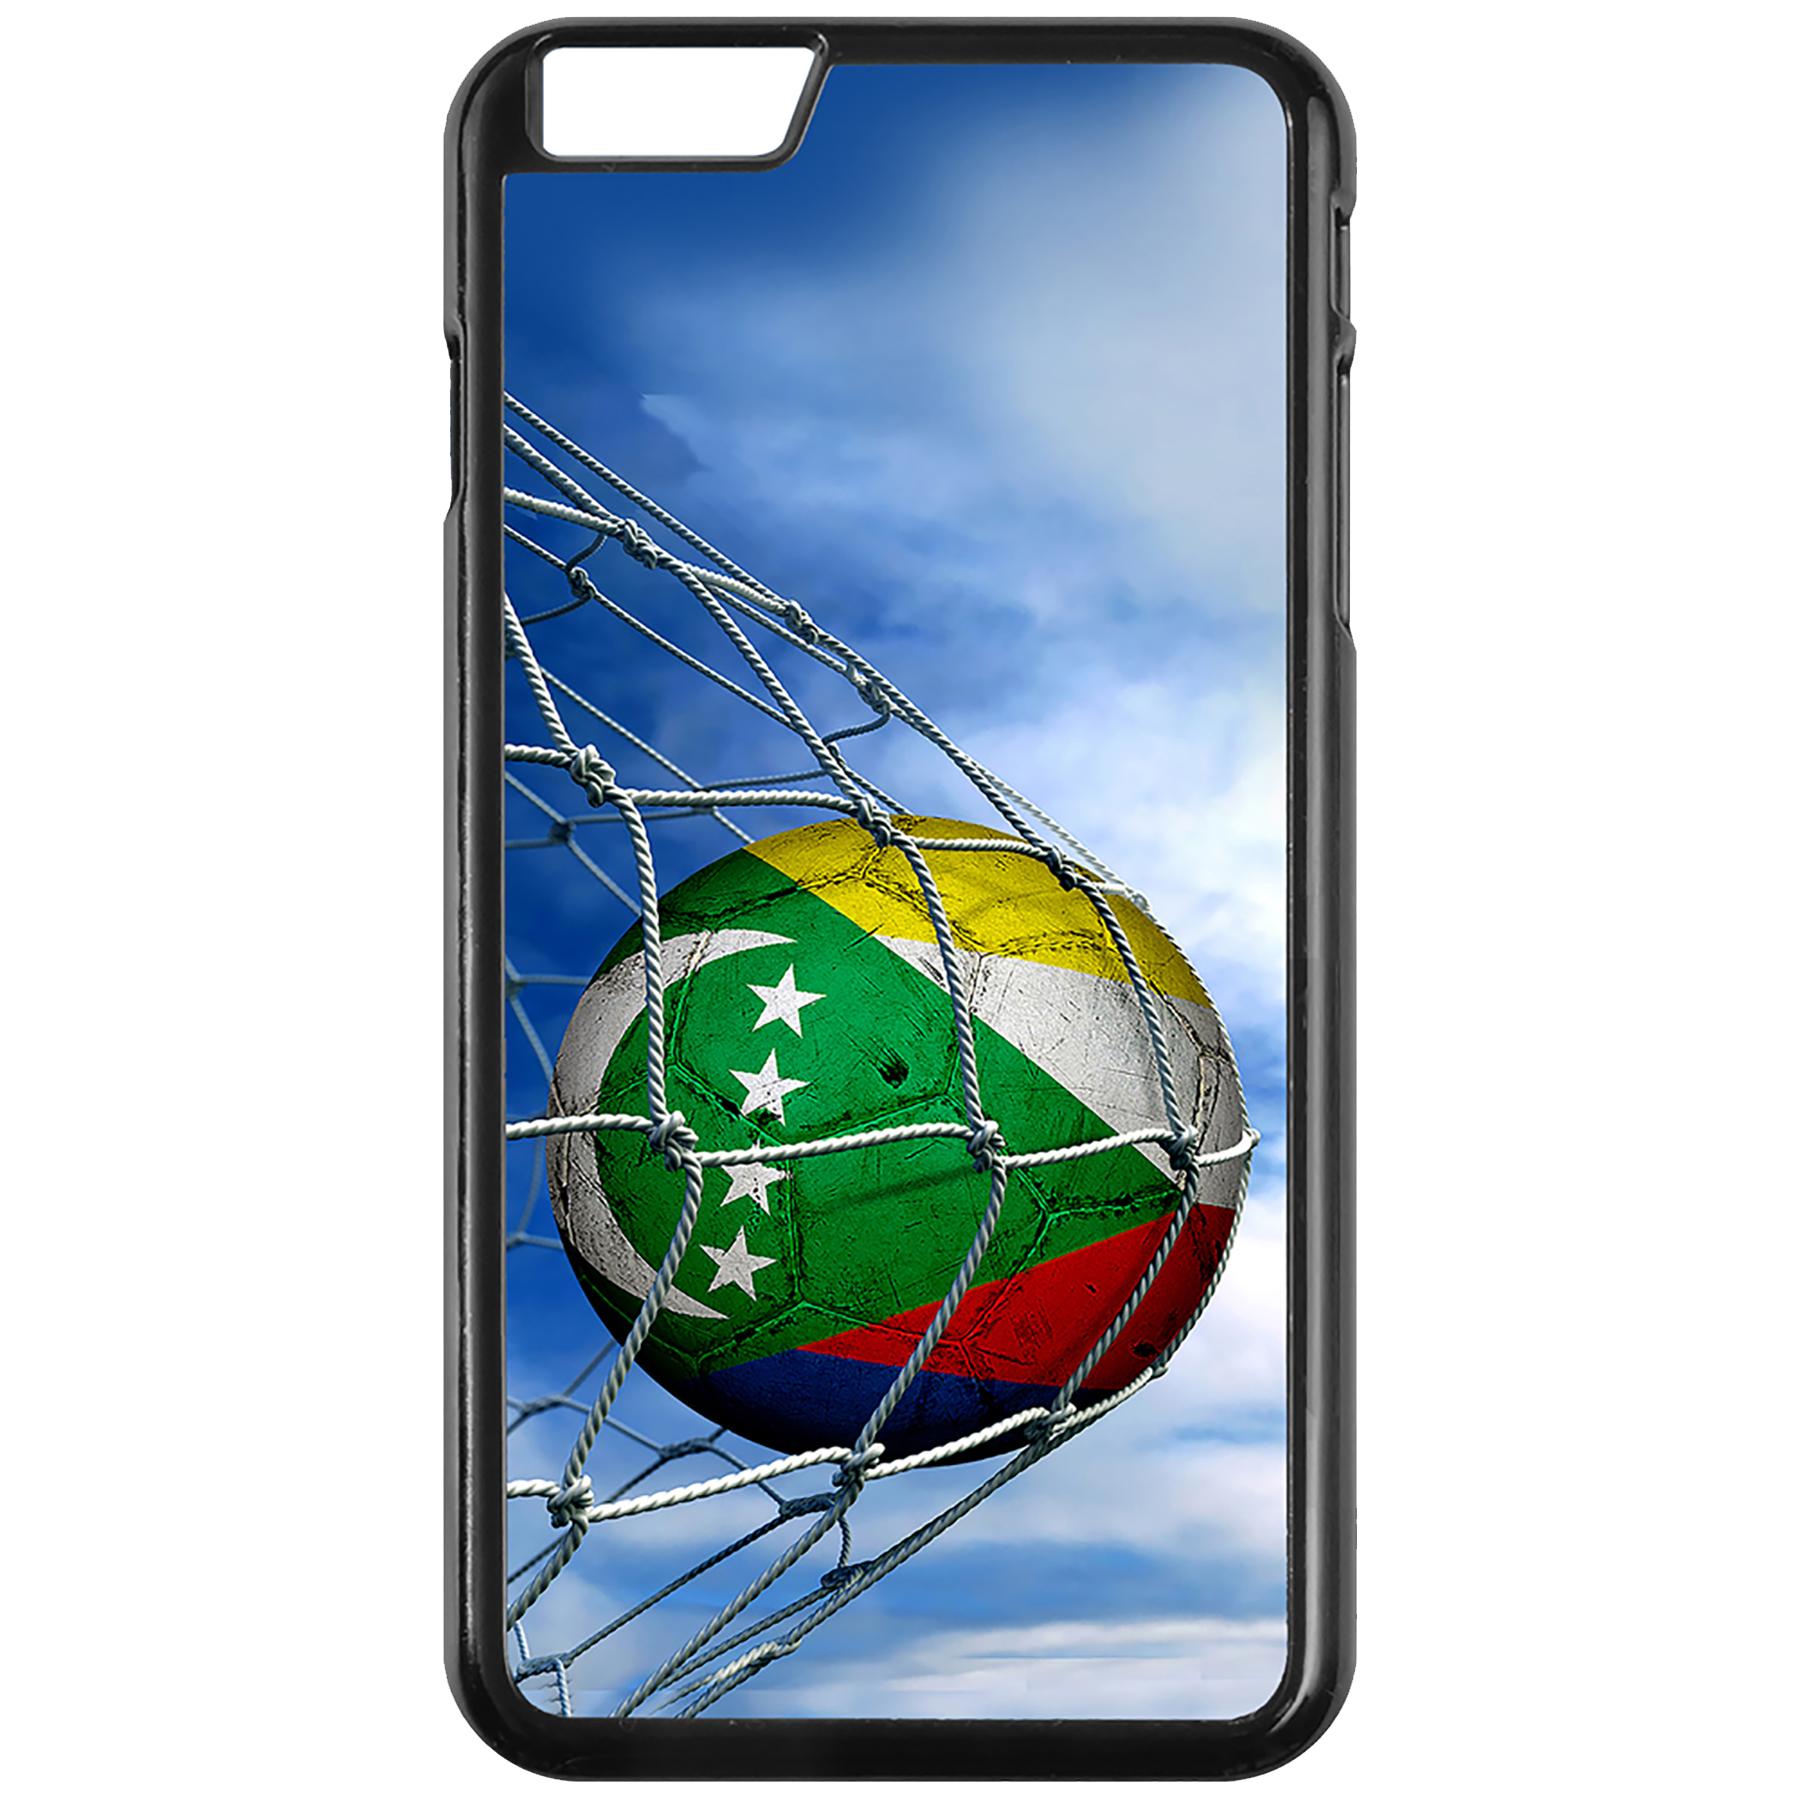 Apple-iPhone-Case-with-Flag-of-Comoros-Comorian-Many-Design-Options thumbnail 98